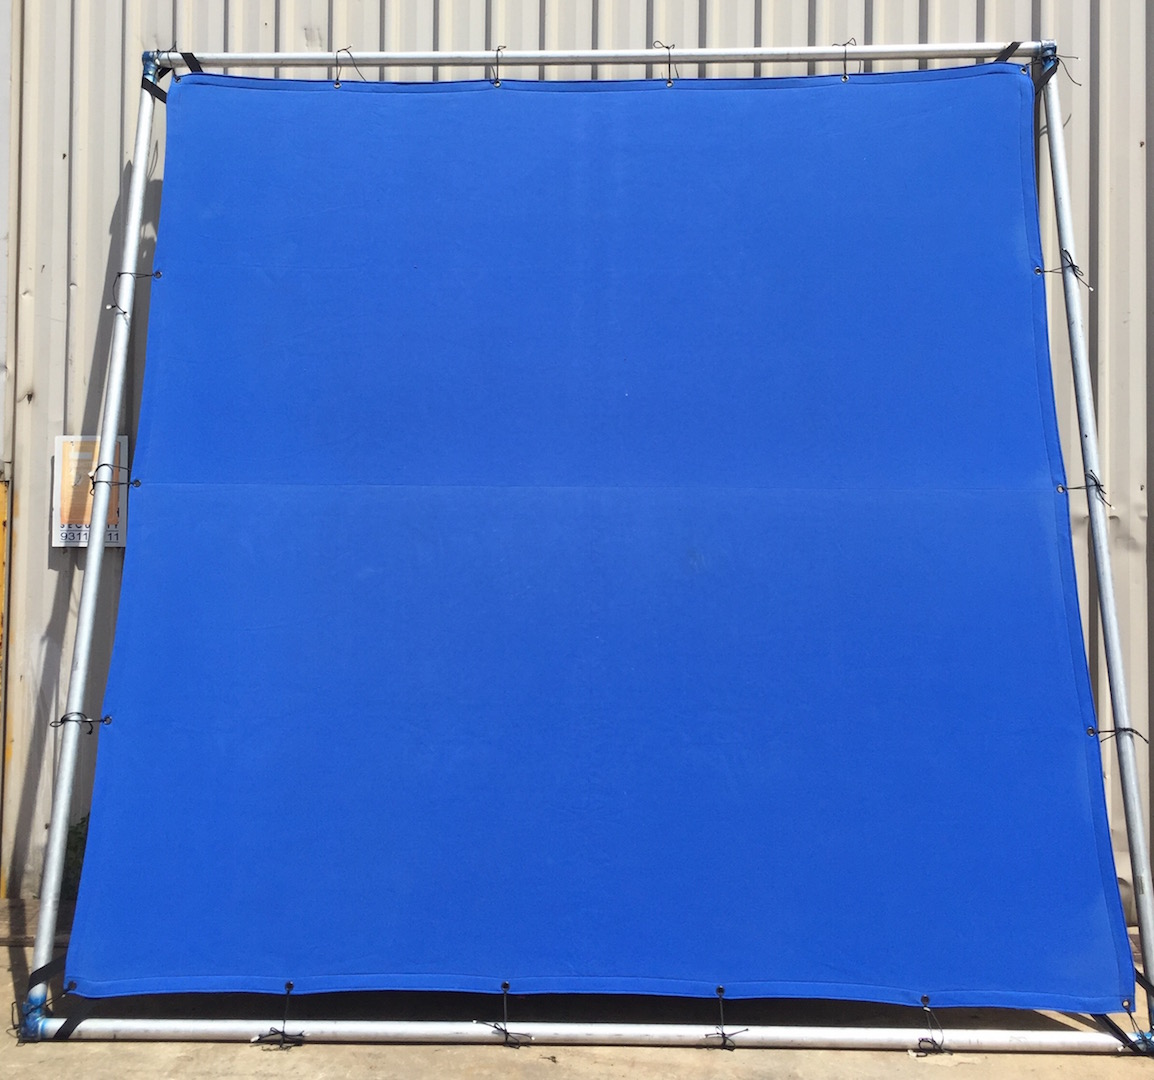 10' x 10' Blue Screen for Hire